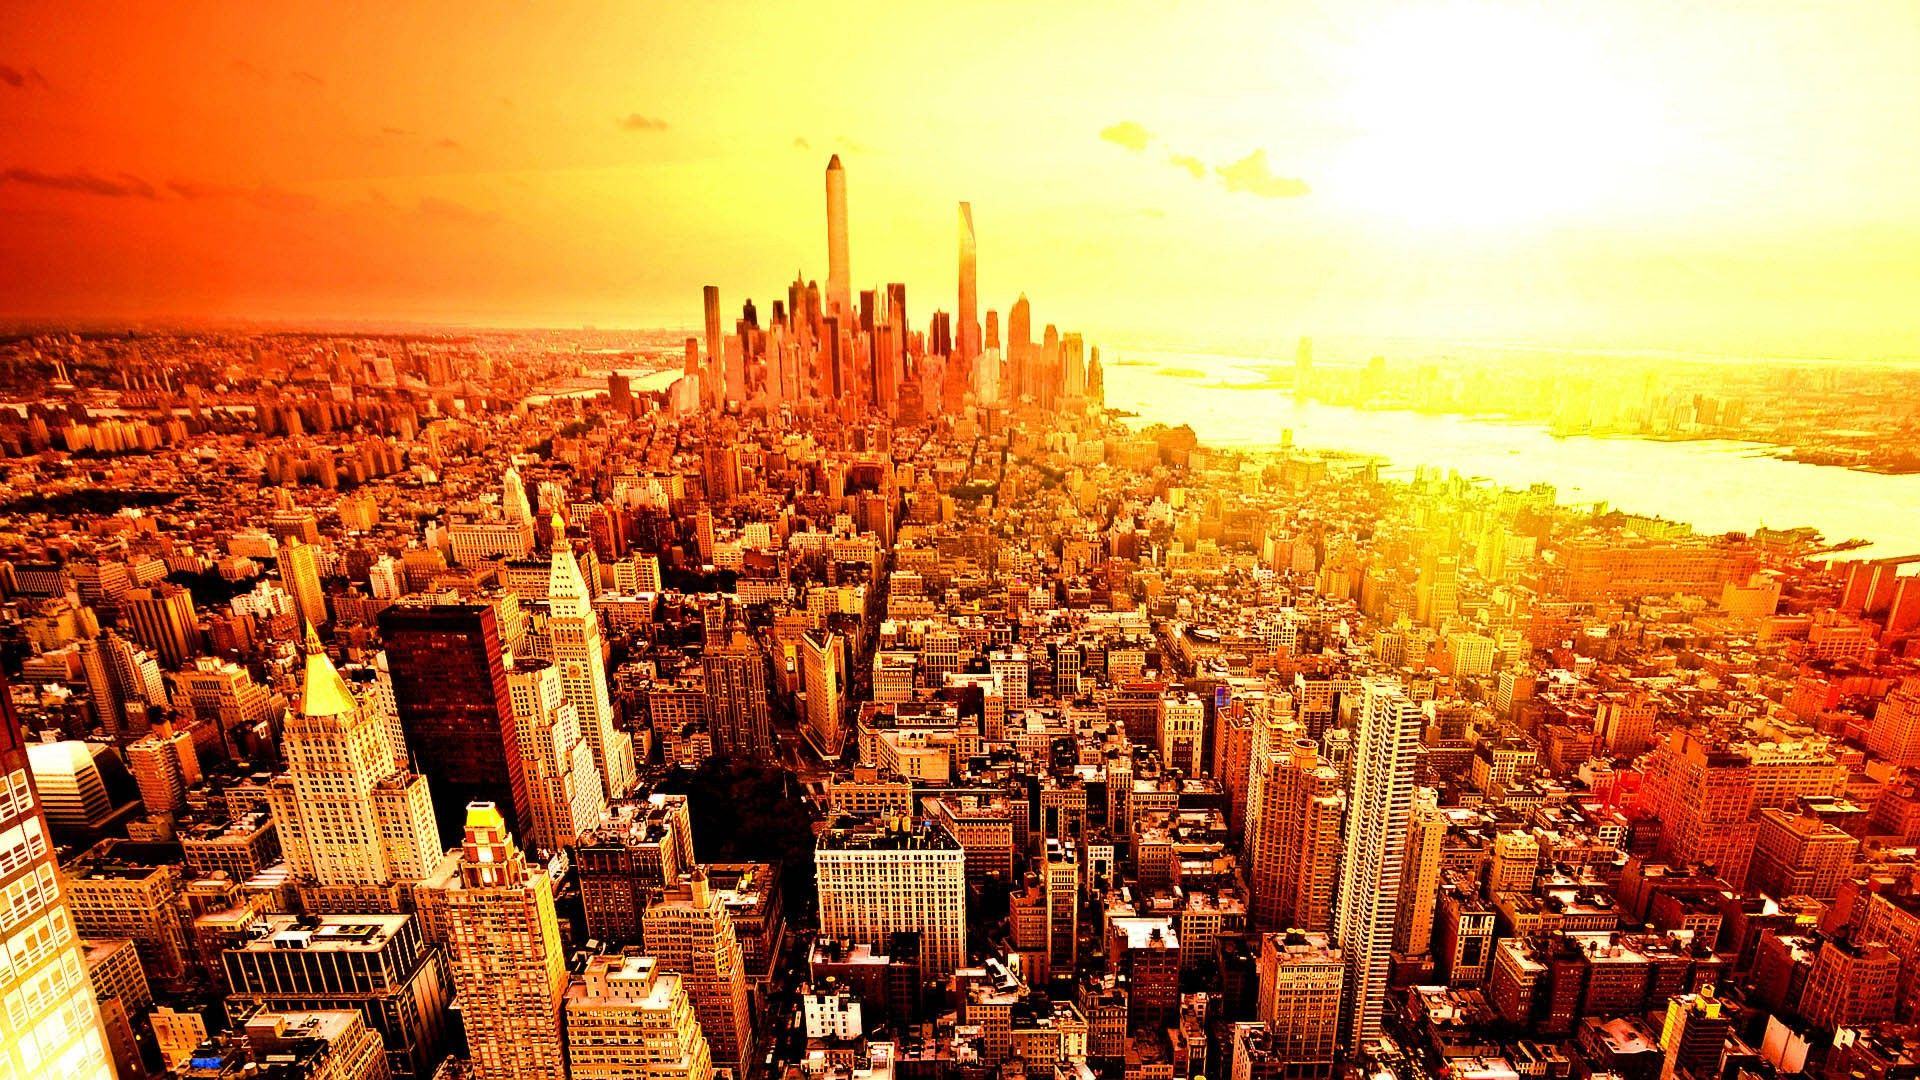 37 Full Hd Wallpapers Download Free Awesome Full Hd New York City Background City Skyline Wallpaper New York Wallpaper